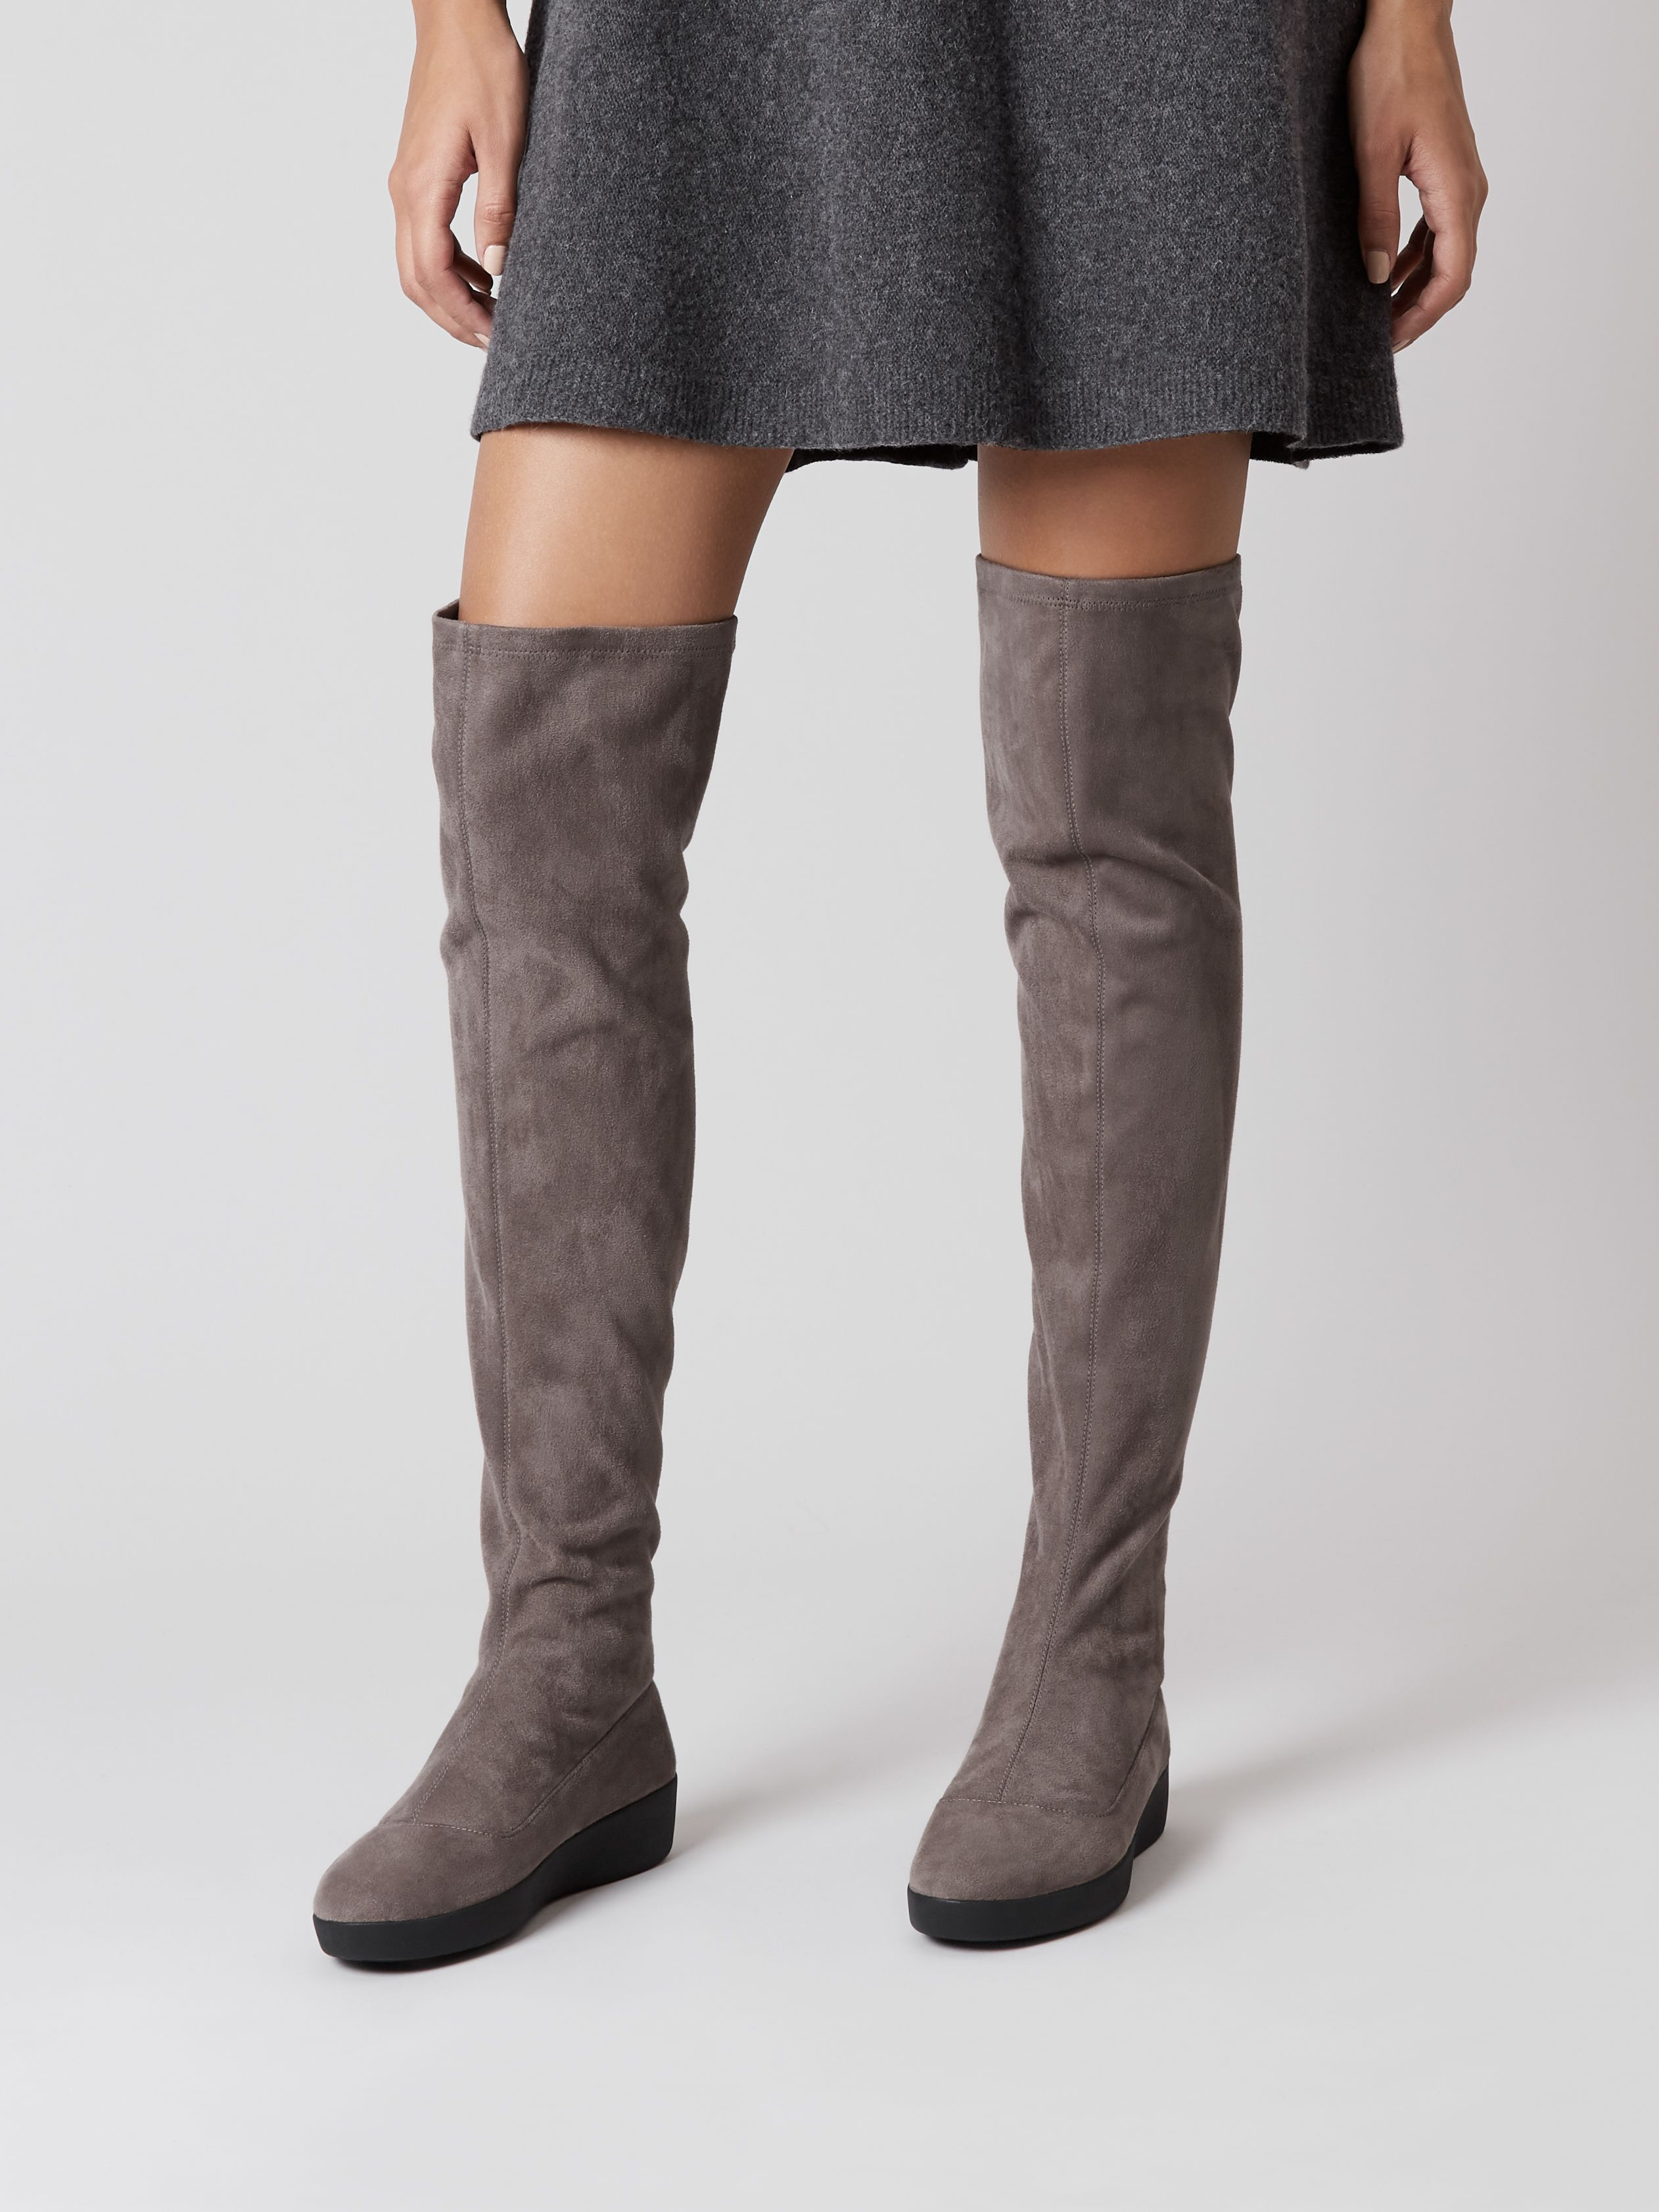 Boots Alice Over The Knee Sock Boots Boots Womens Boots Uk Womens Boots